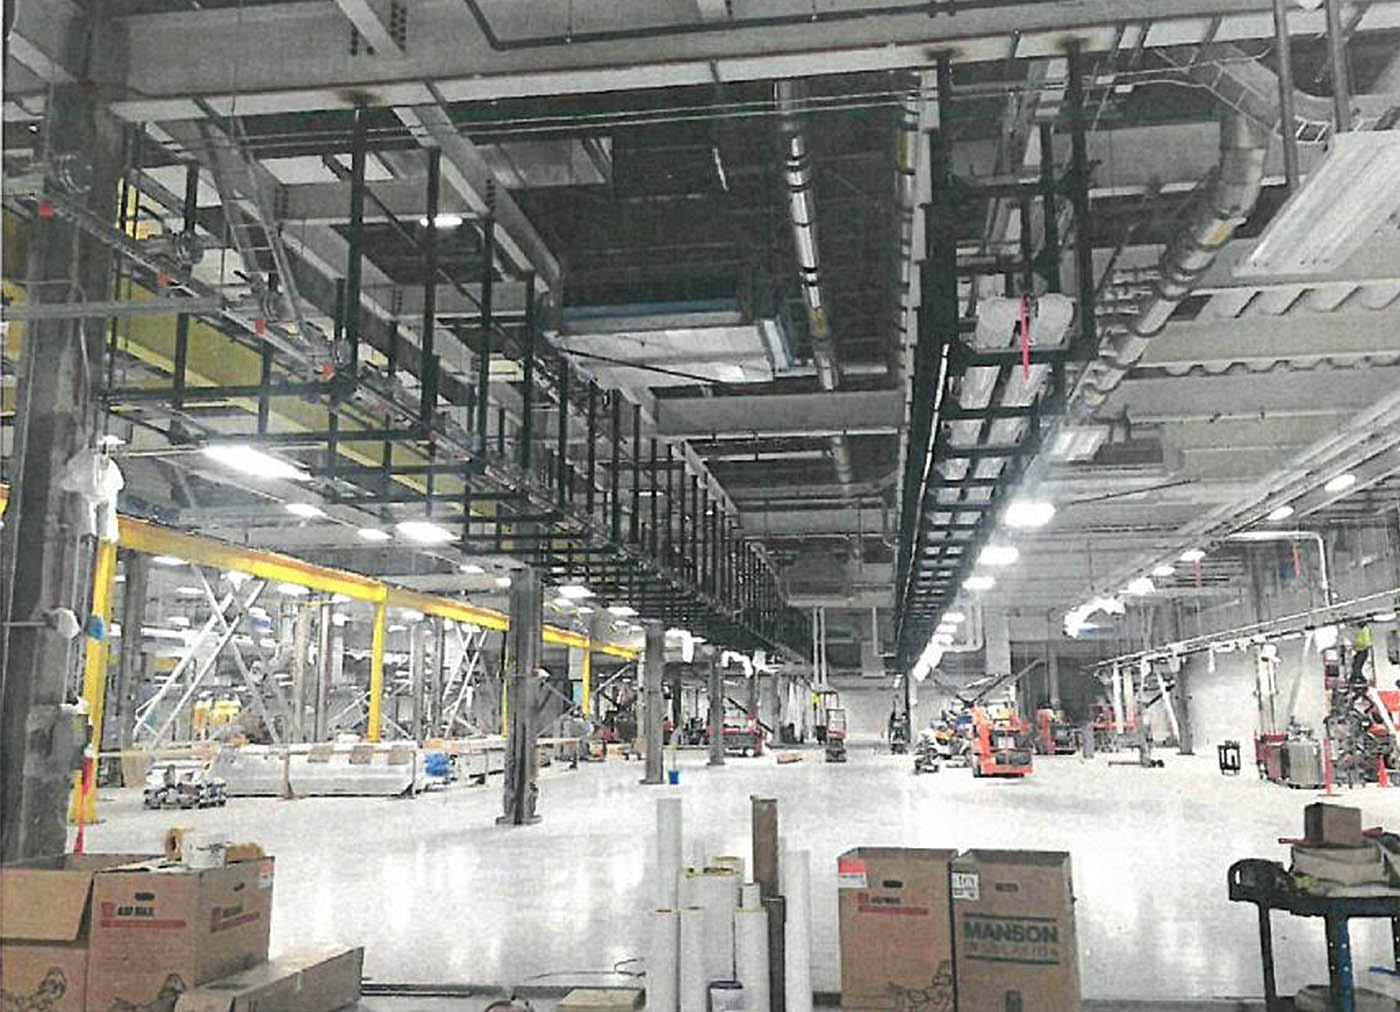 The first glimpse inside the massive SolarCity facility at Buffalo's RiverBend comes courtesy of Empire State Development Corp.'s update on the project, which states the structure is scheduled for 'substantial completion' by Sept. 15.